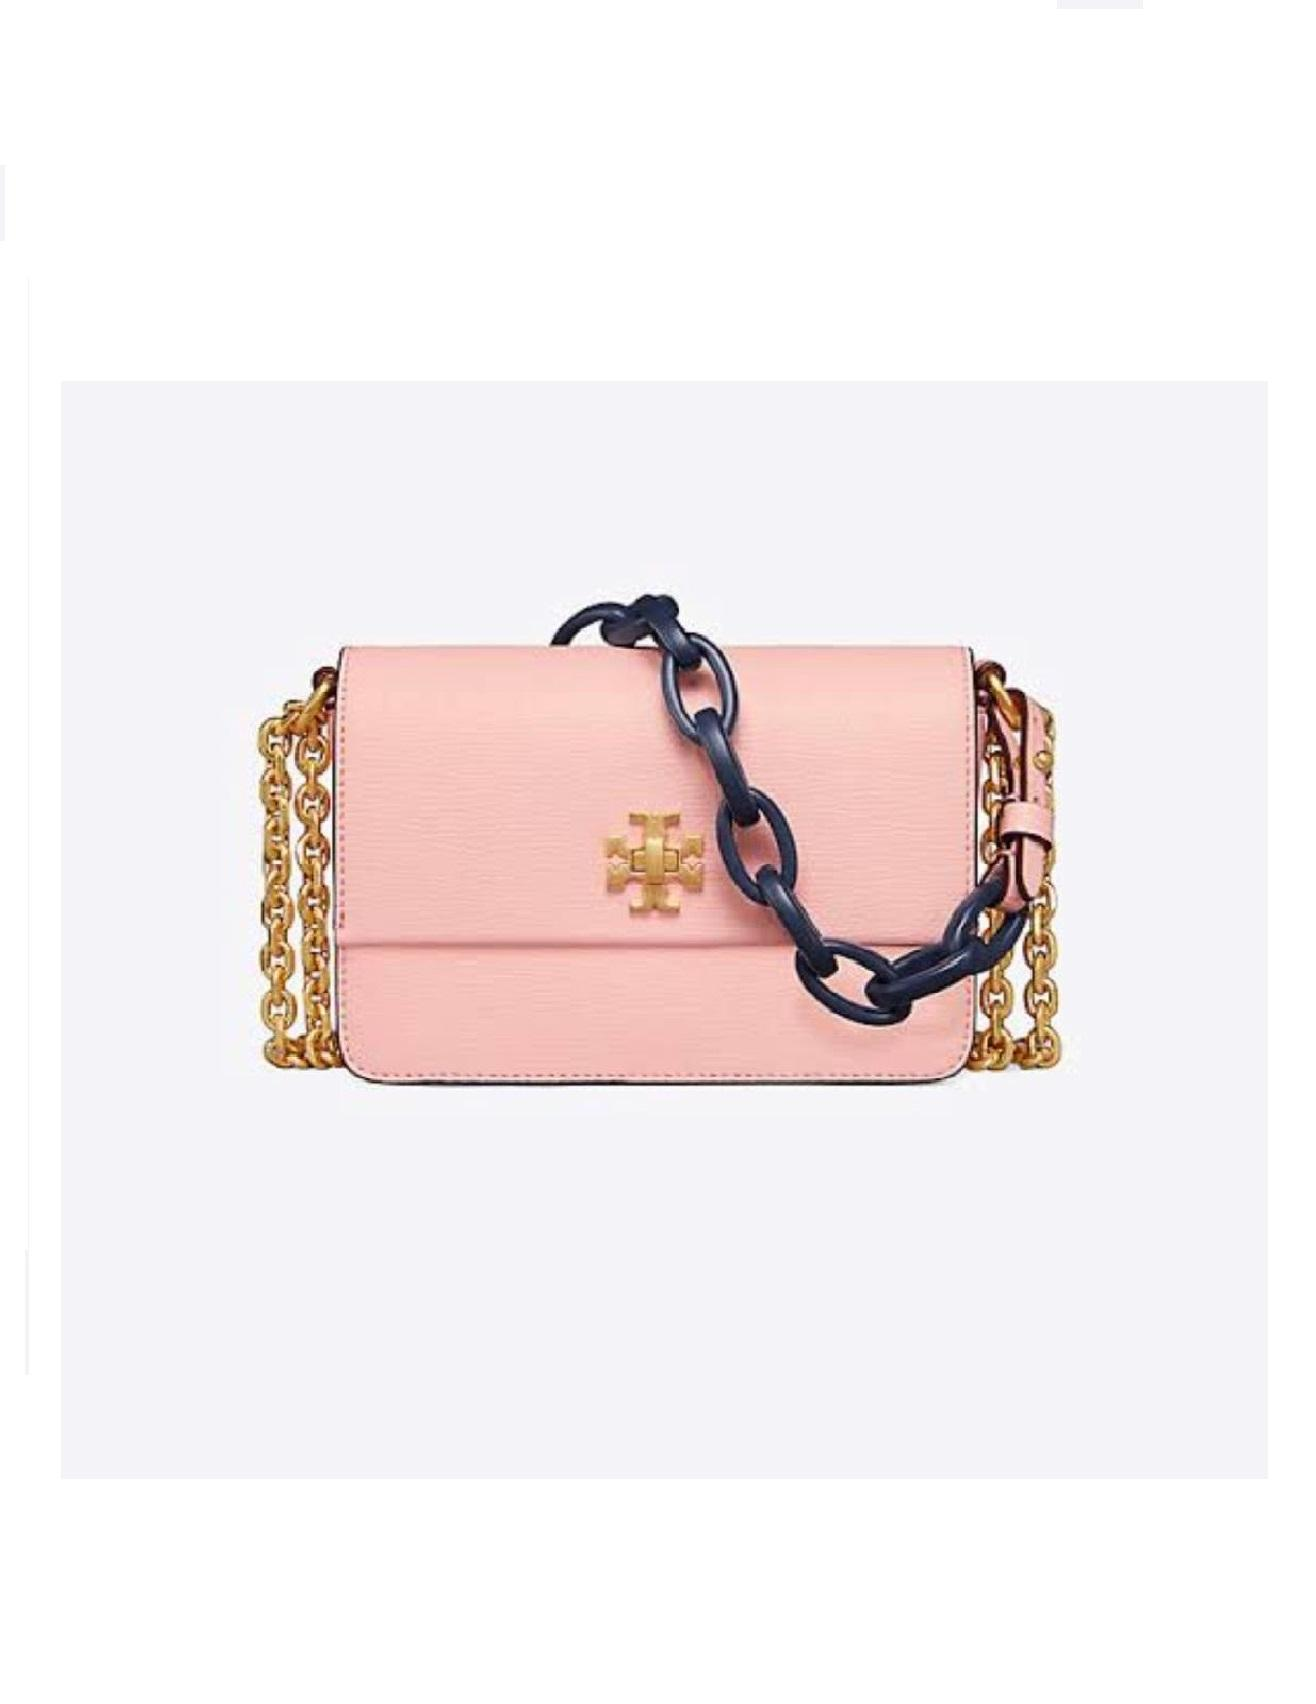 216c9a0e0723 YFB Tory Burch Crossbody Shoulder Bag For Women - Baby Pink